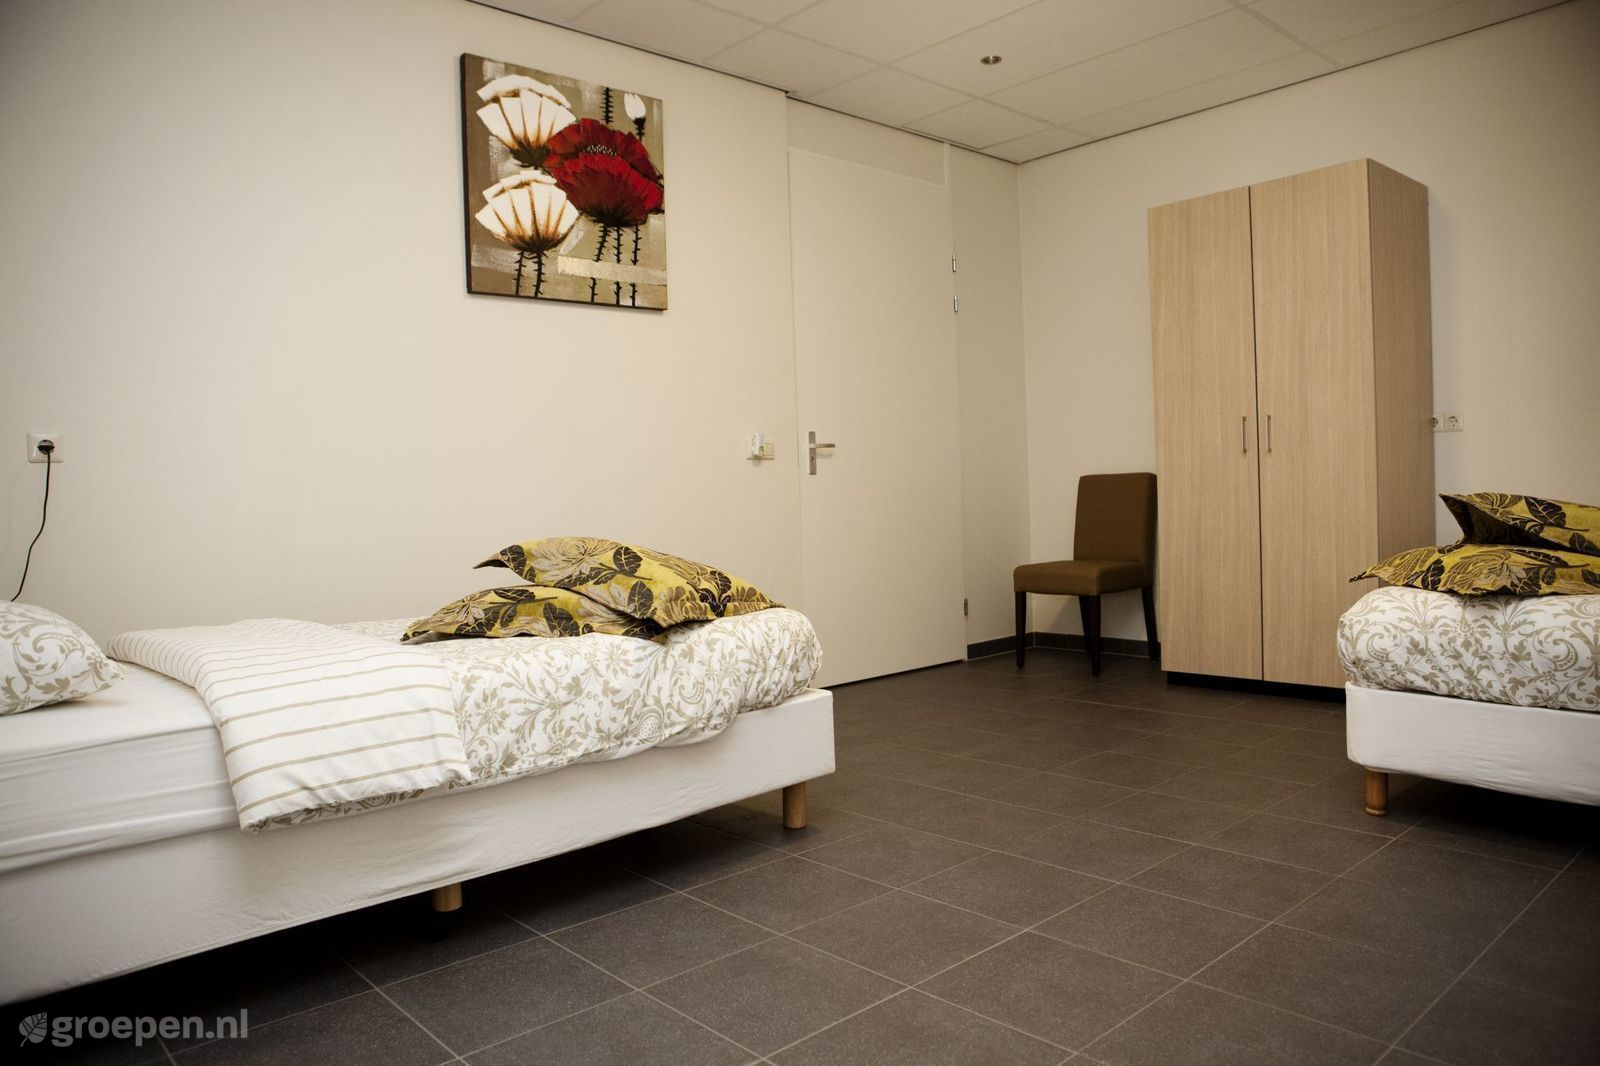 Group accommodation Alphen